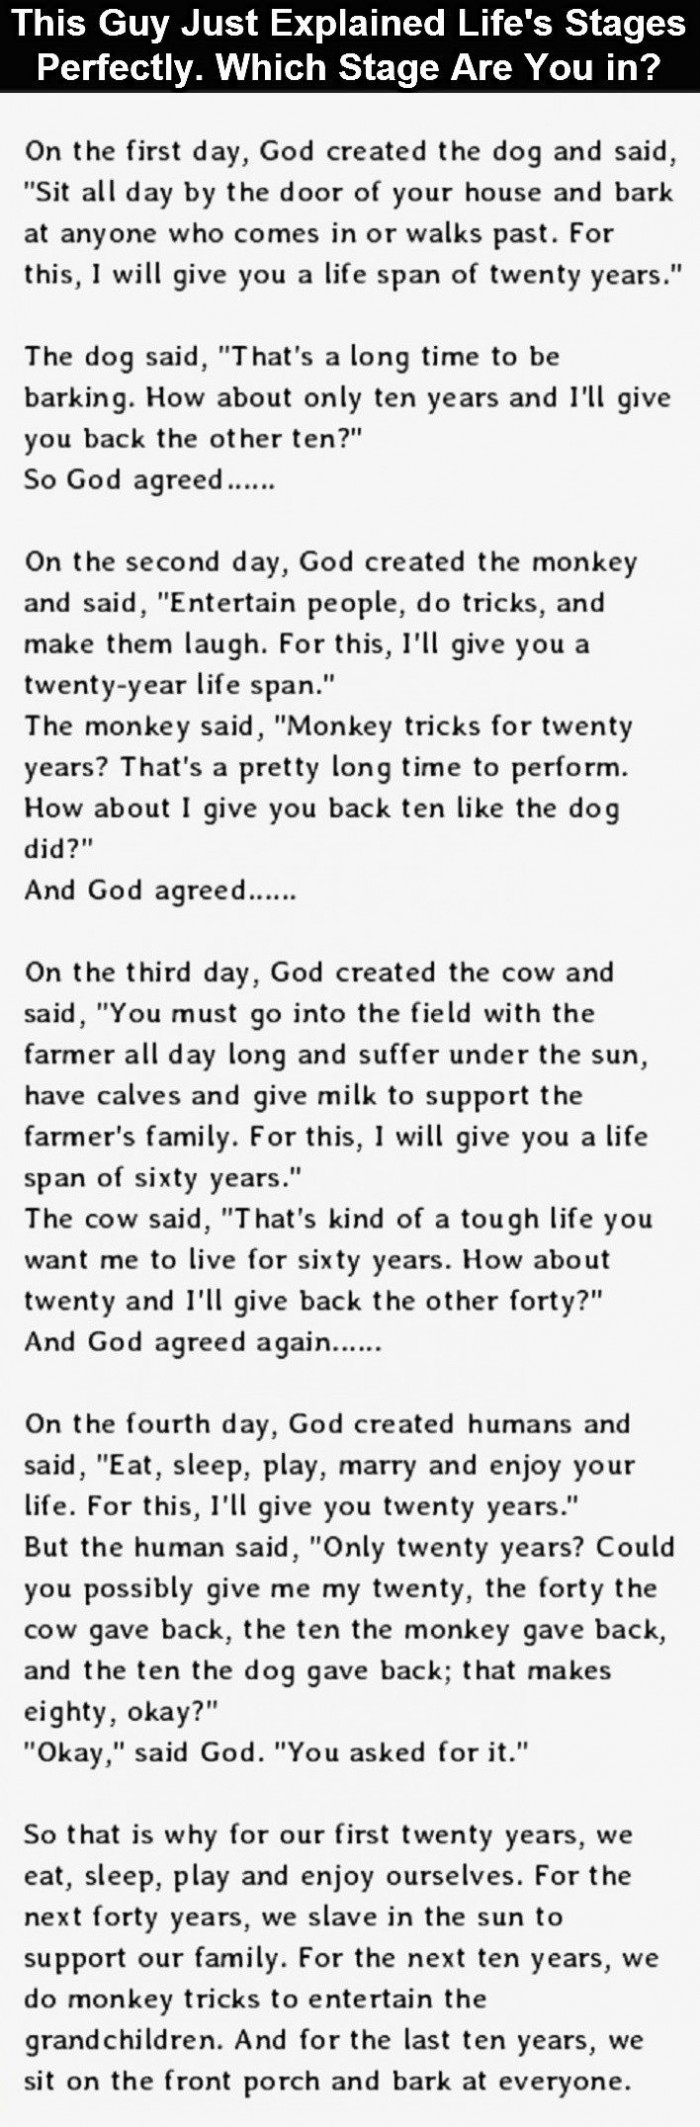 The Stages Of Life Explained. This Is So Accurate It Hurts.